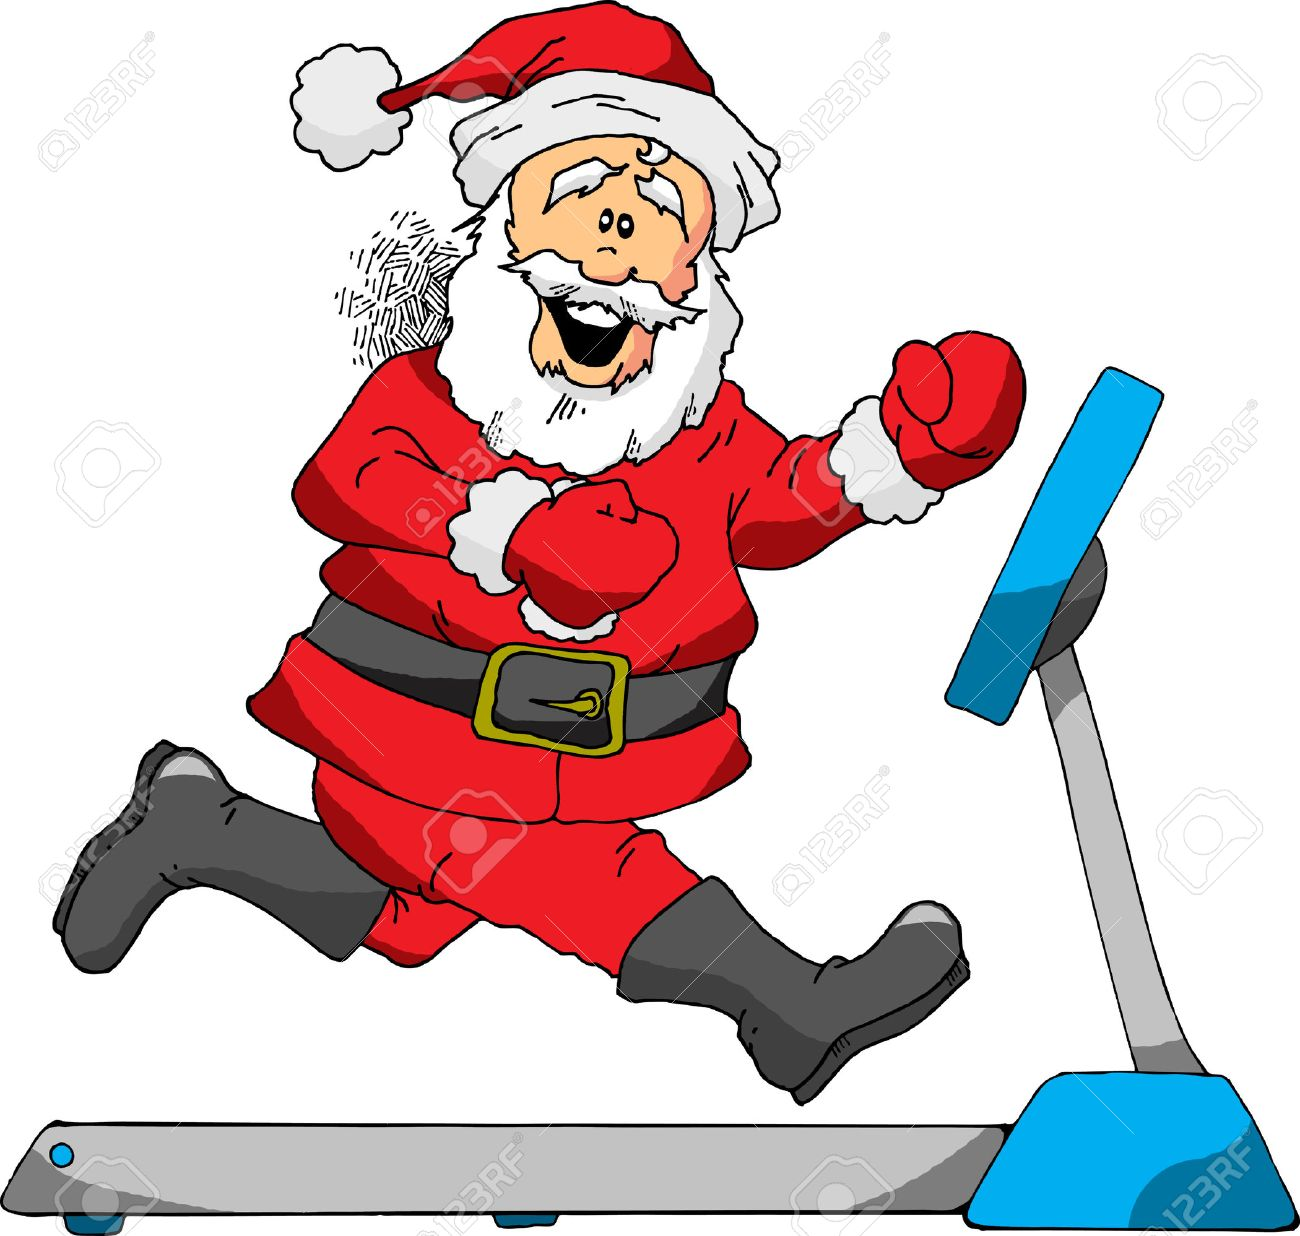 Image result for santa working out